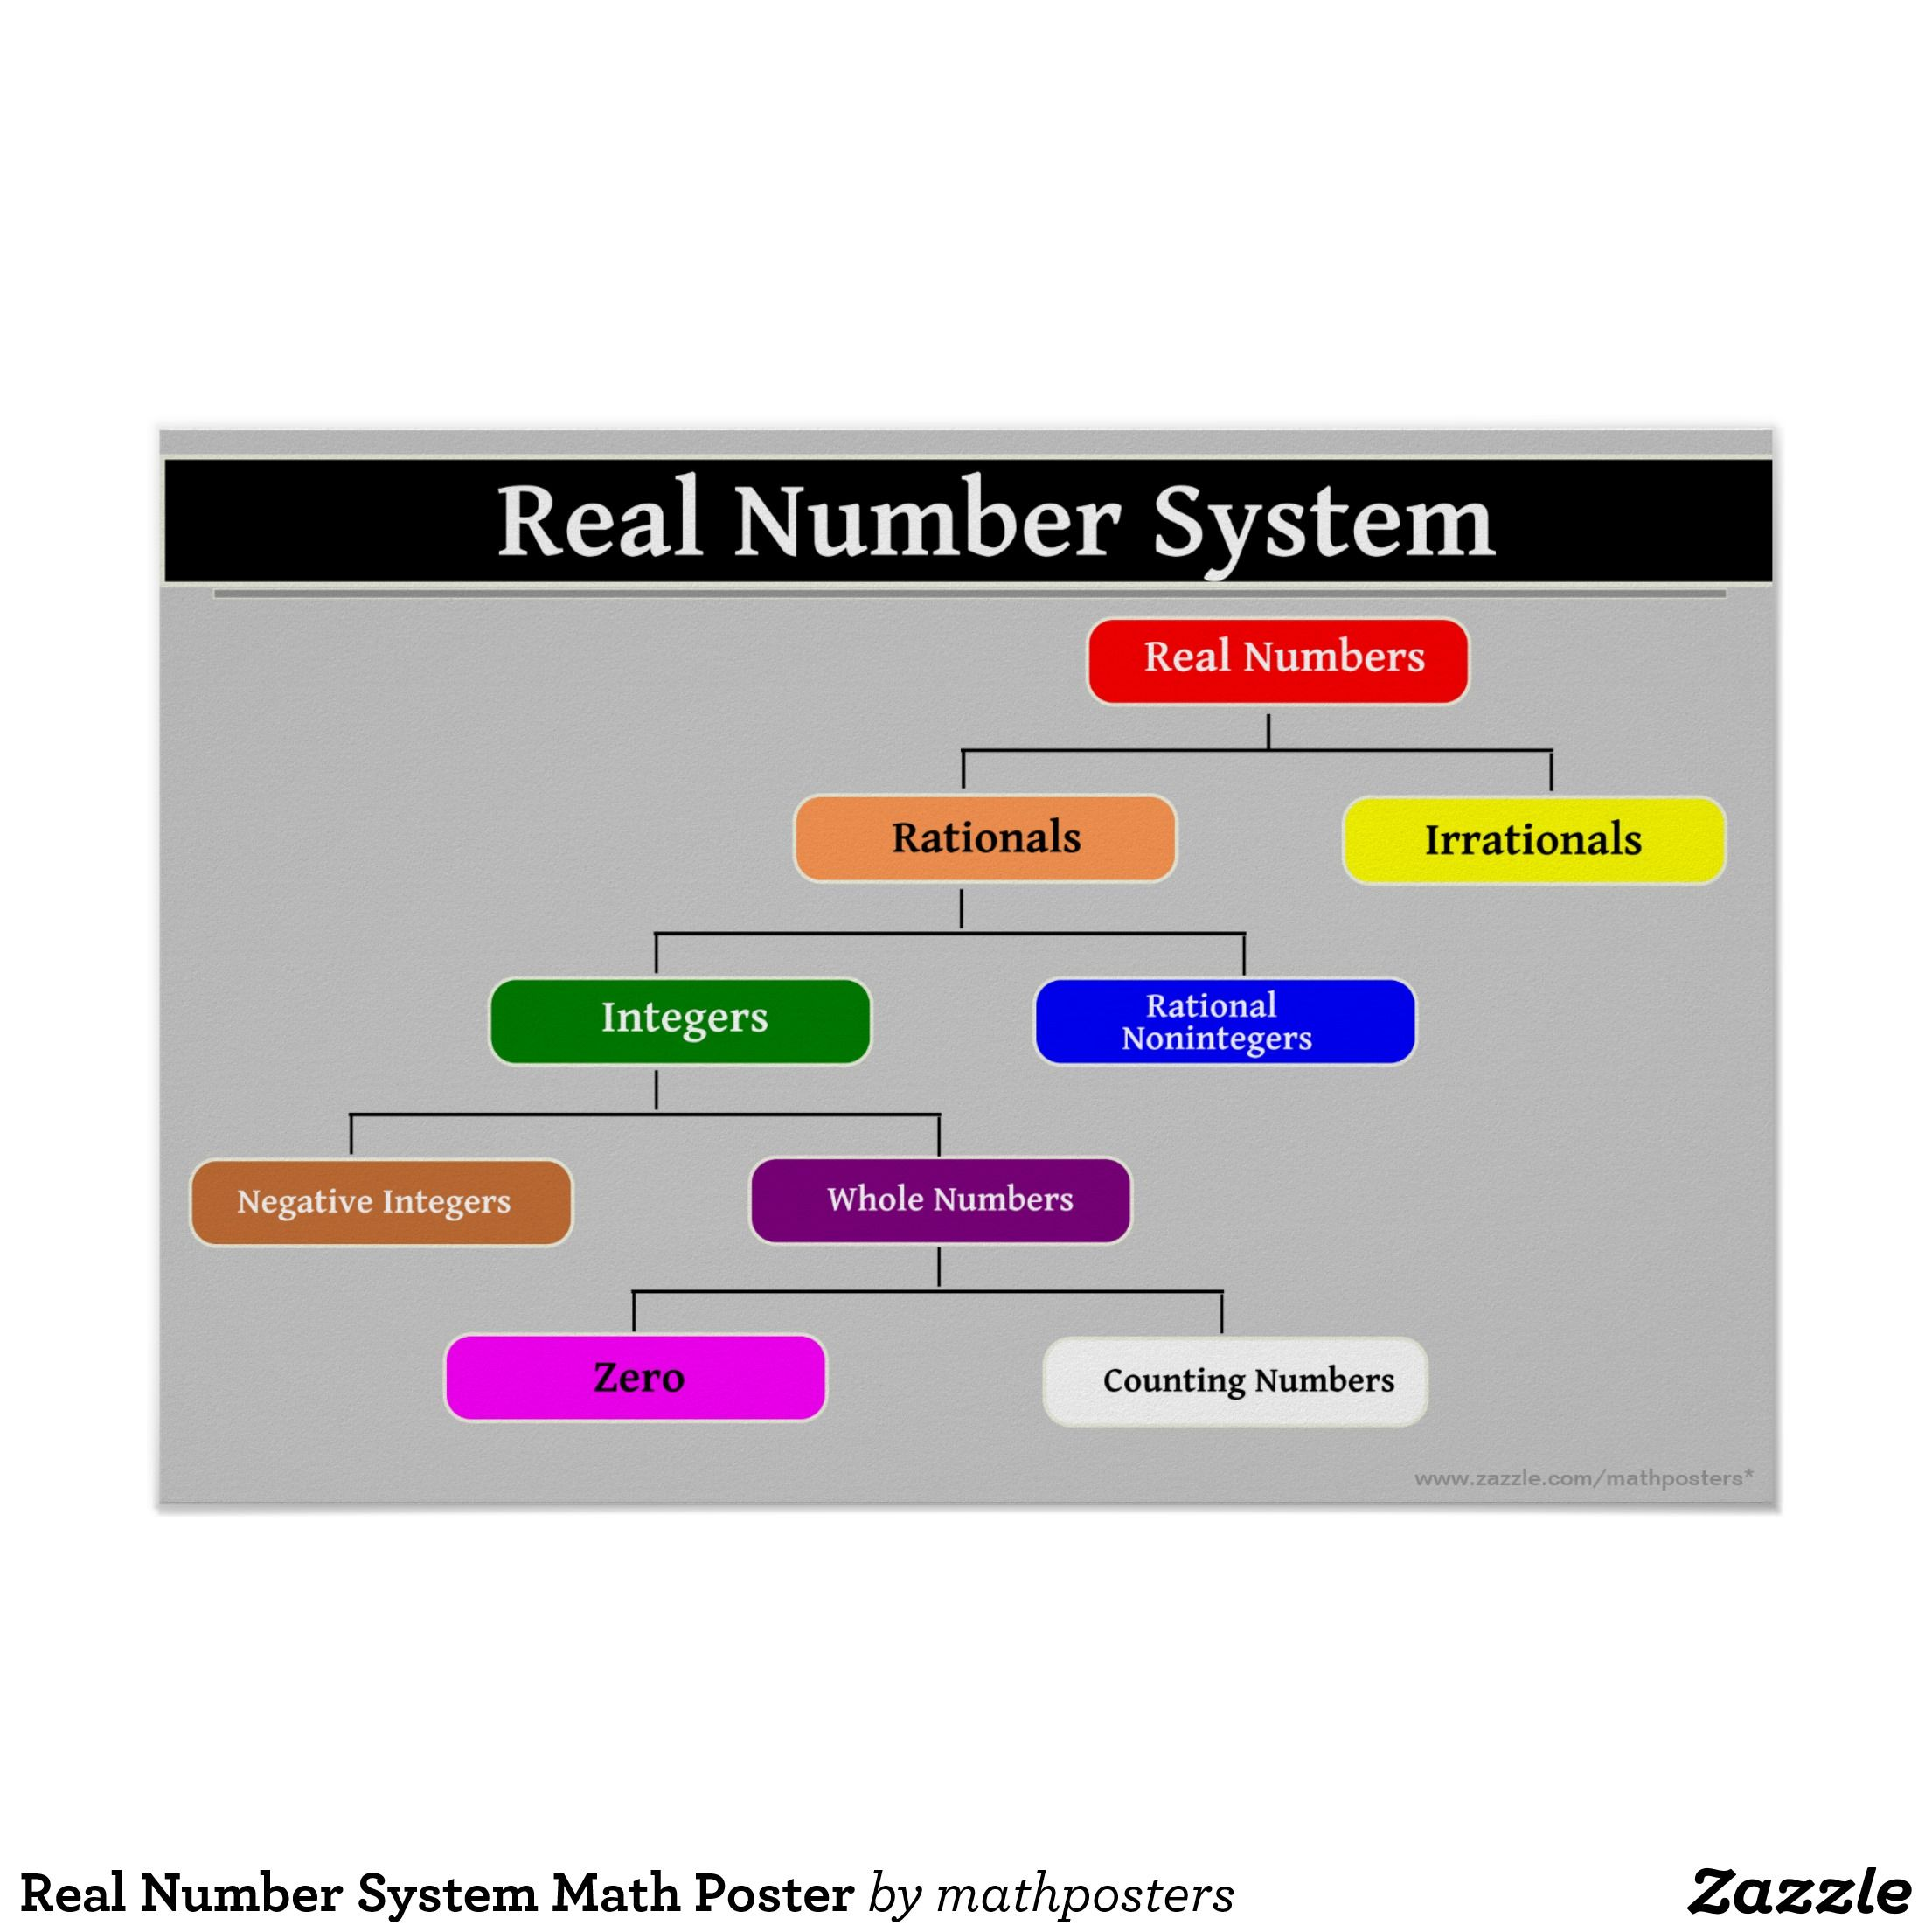 Real number system math poster real number system real numbers real number system math poster pooptronica Gallery